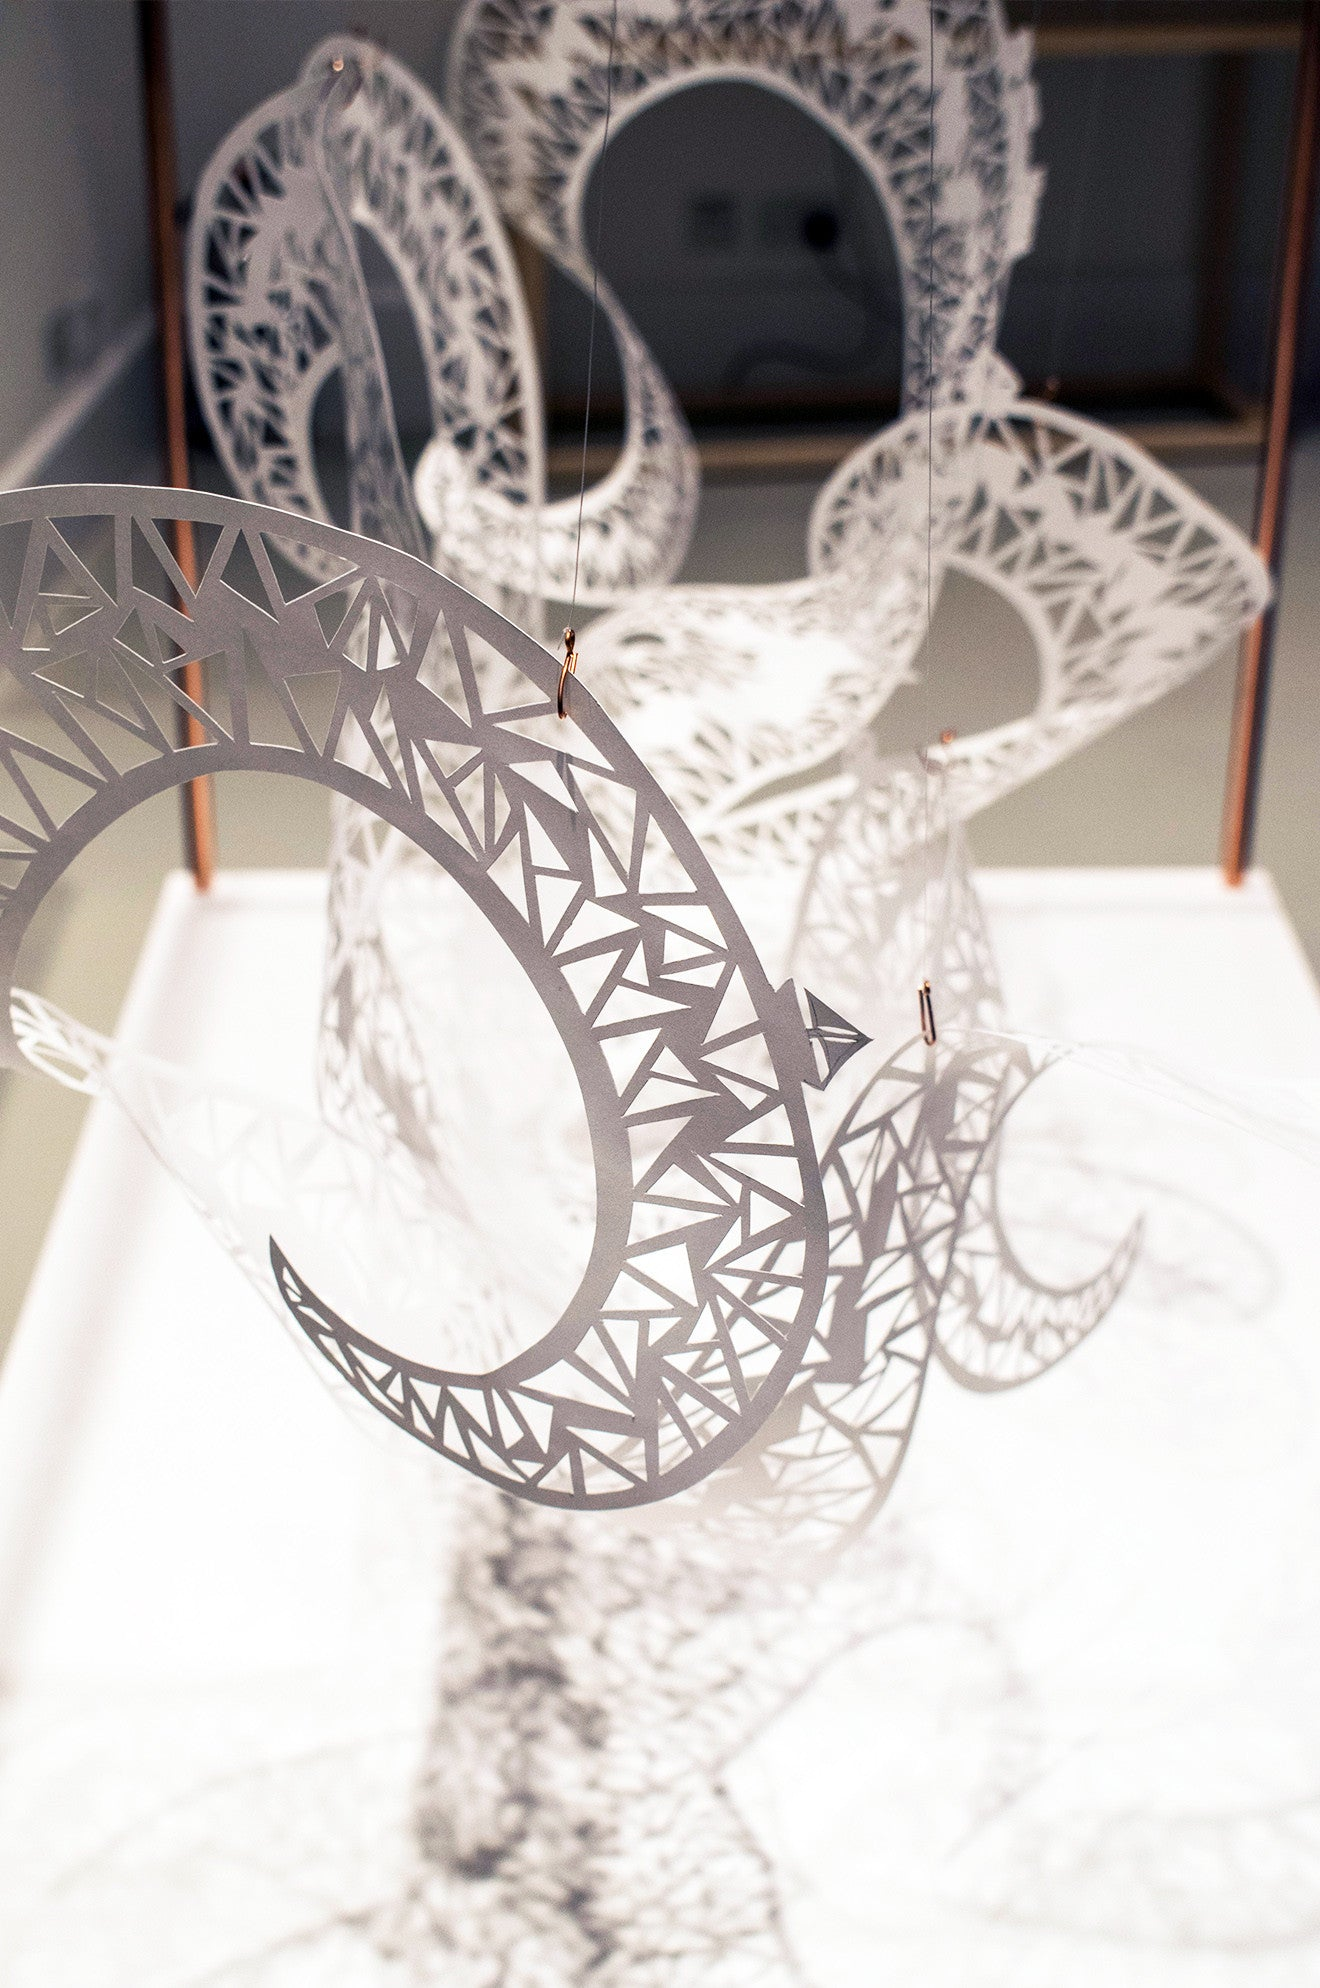 Beautiful hand cut artwork sculptures by Shannon Bartlett-Smith